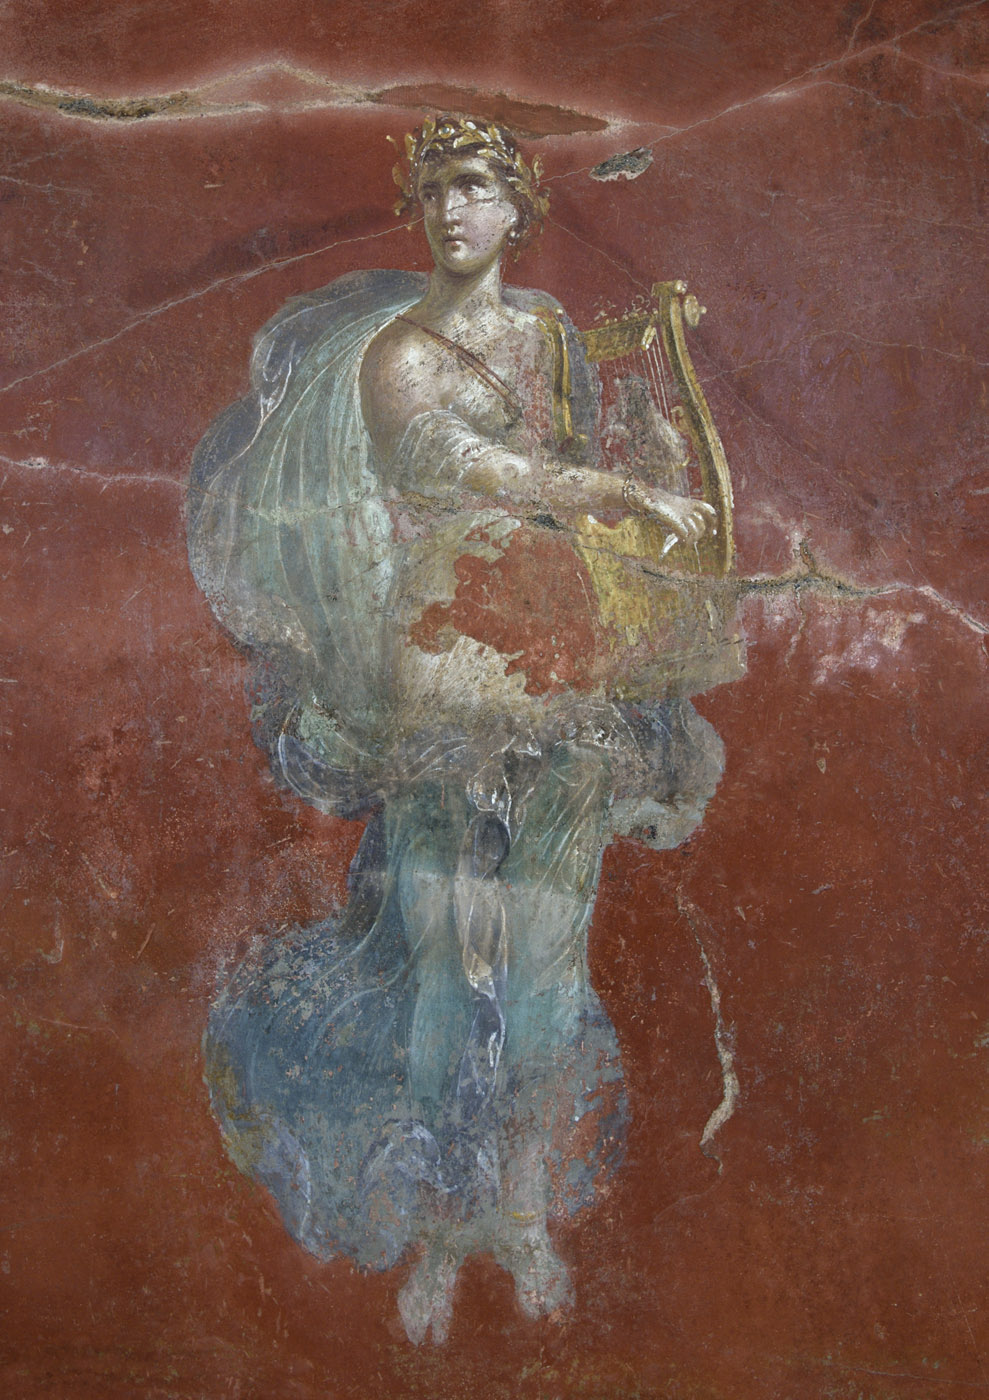 Apollo. Neronian age. Pompeii, Great Gymnasium